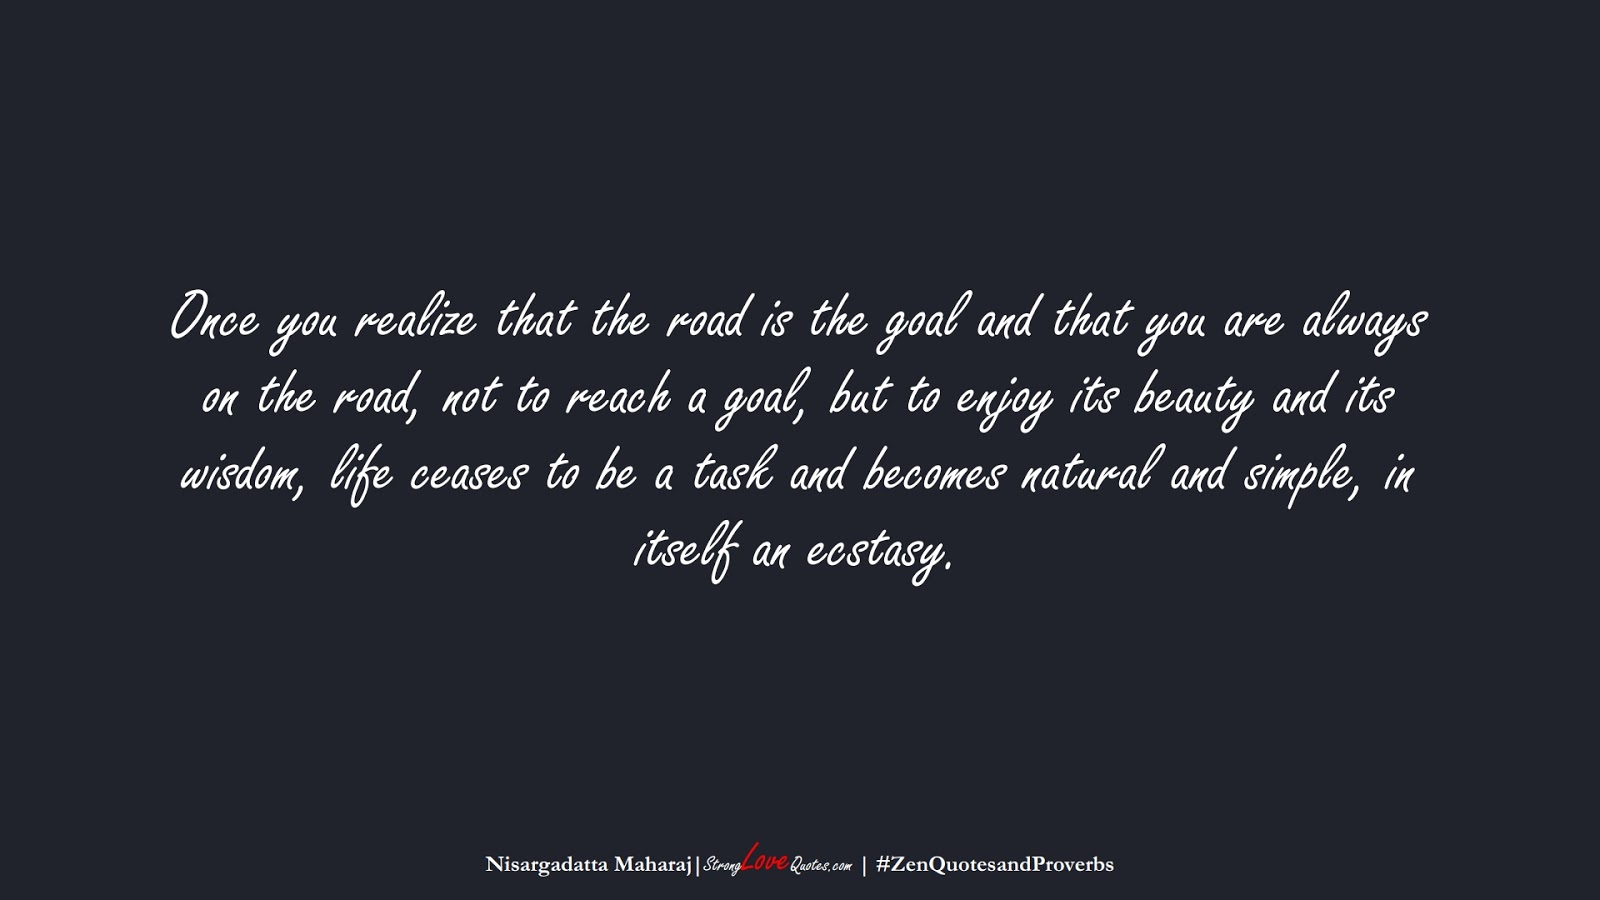 Once you realize that the road is the goal and that you are always on the road, not to reach a goal, but to enjoy its beauty and its wisdom, life ceases to be a task and becomes natural and simple, in itself an ecstasy. (Nisargadatta Maharaj);  #ZenQuotesandProverbs